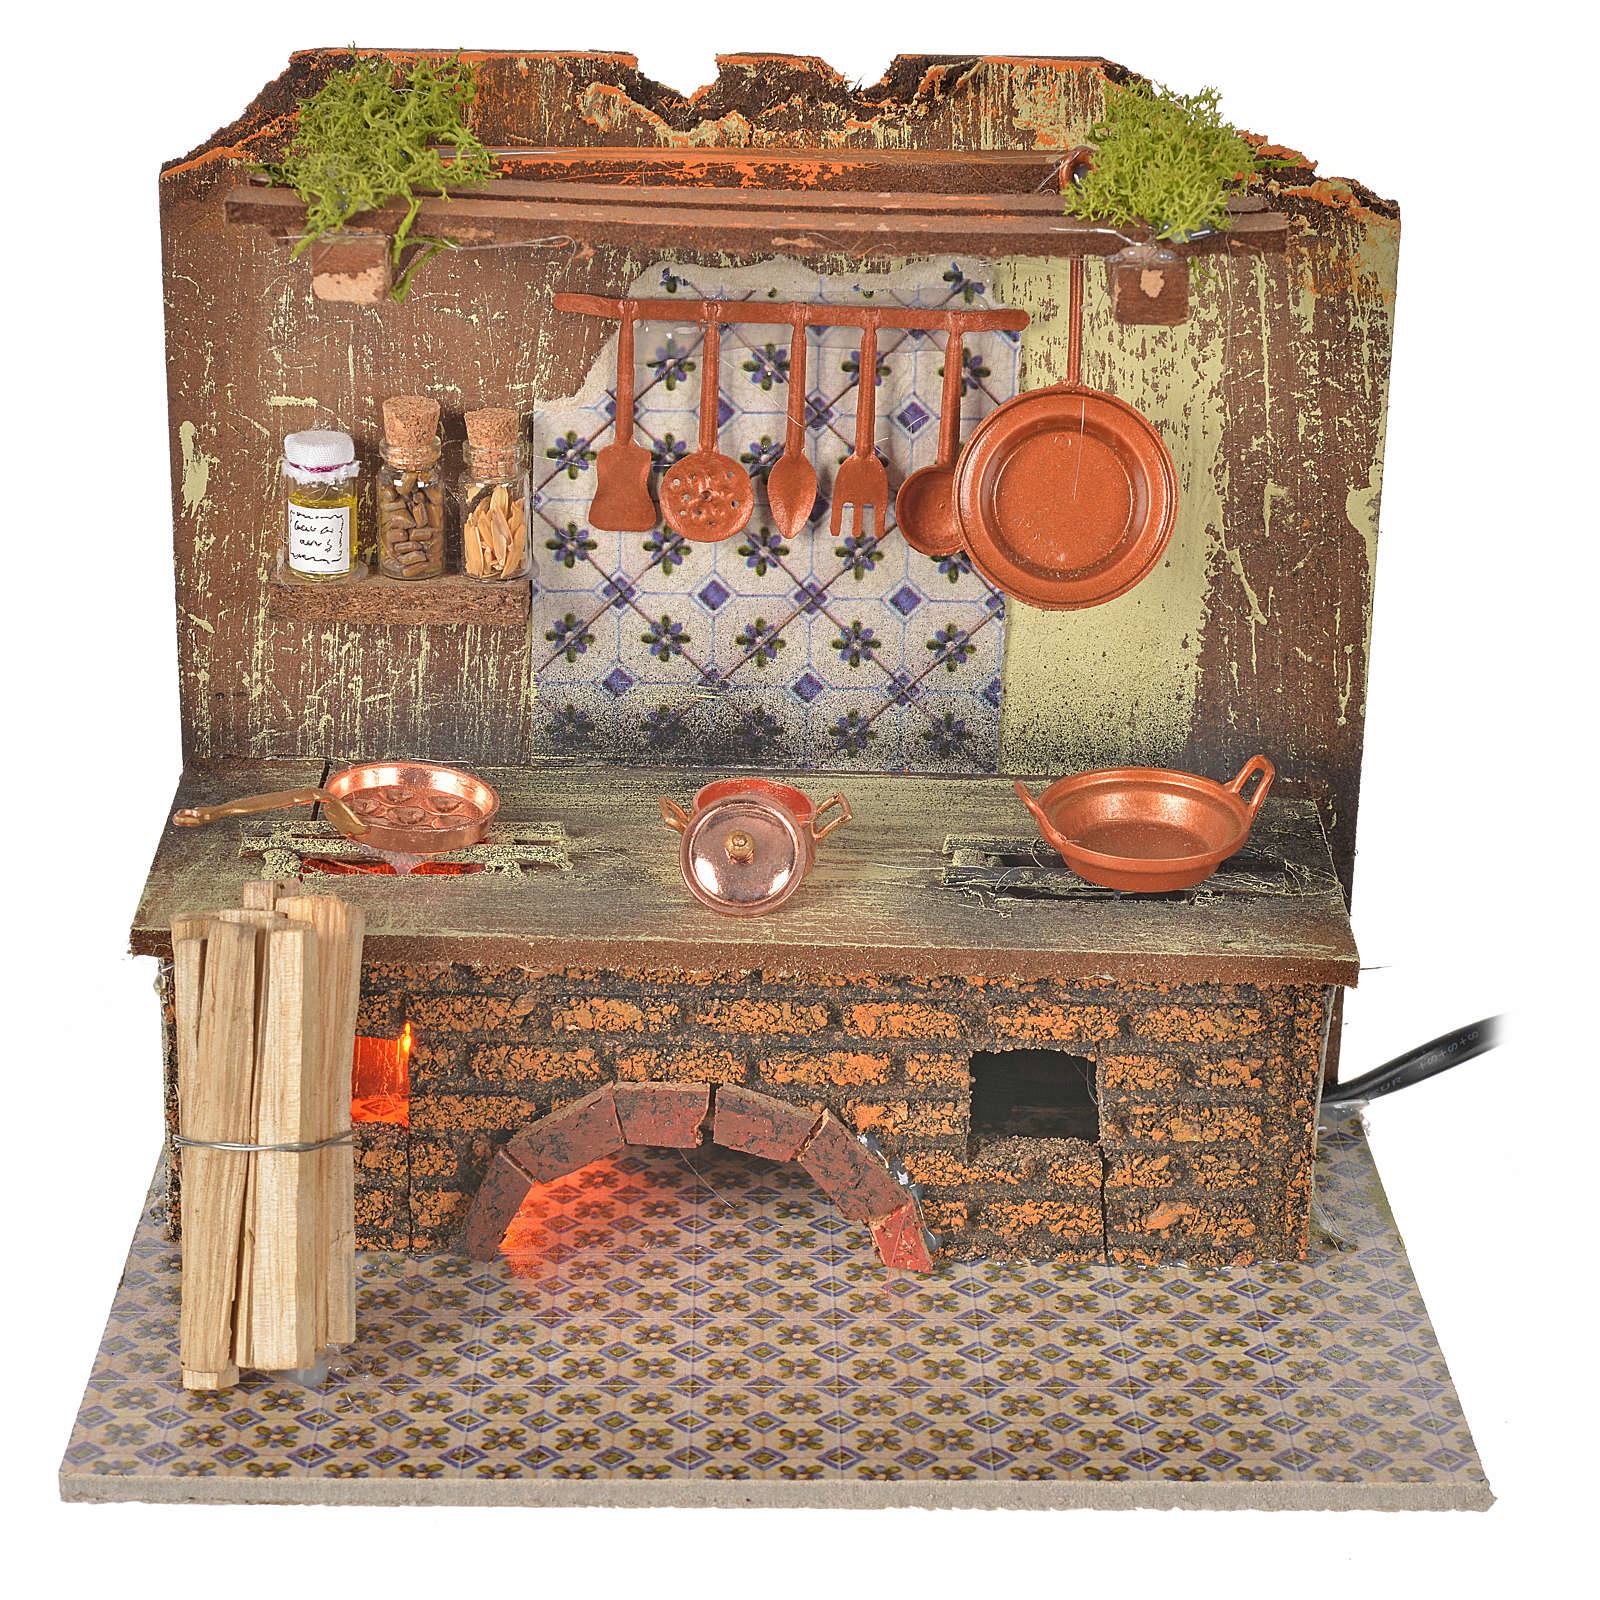 Nativity accessory, kitchen with flame effect and pans 20x14cm 4